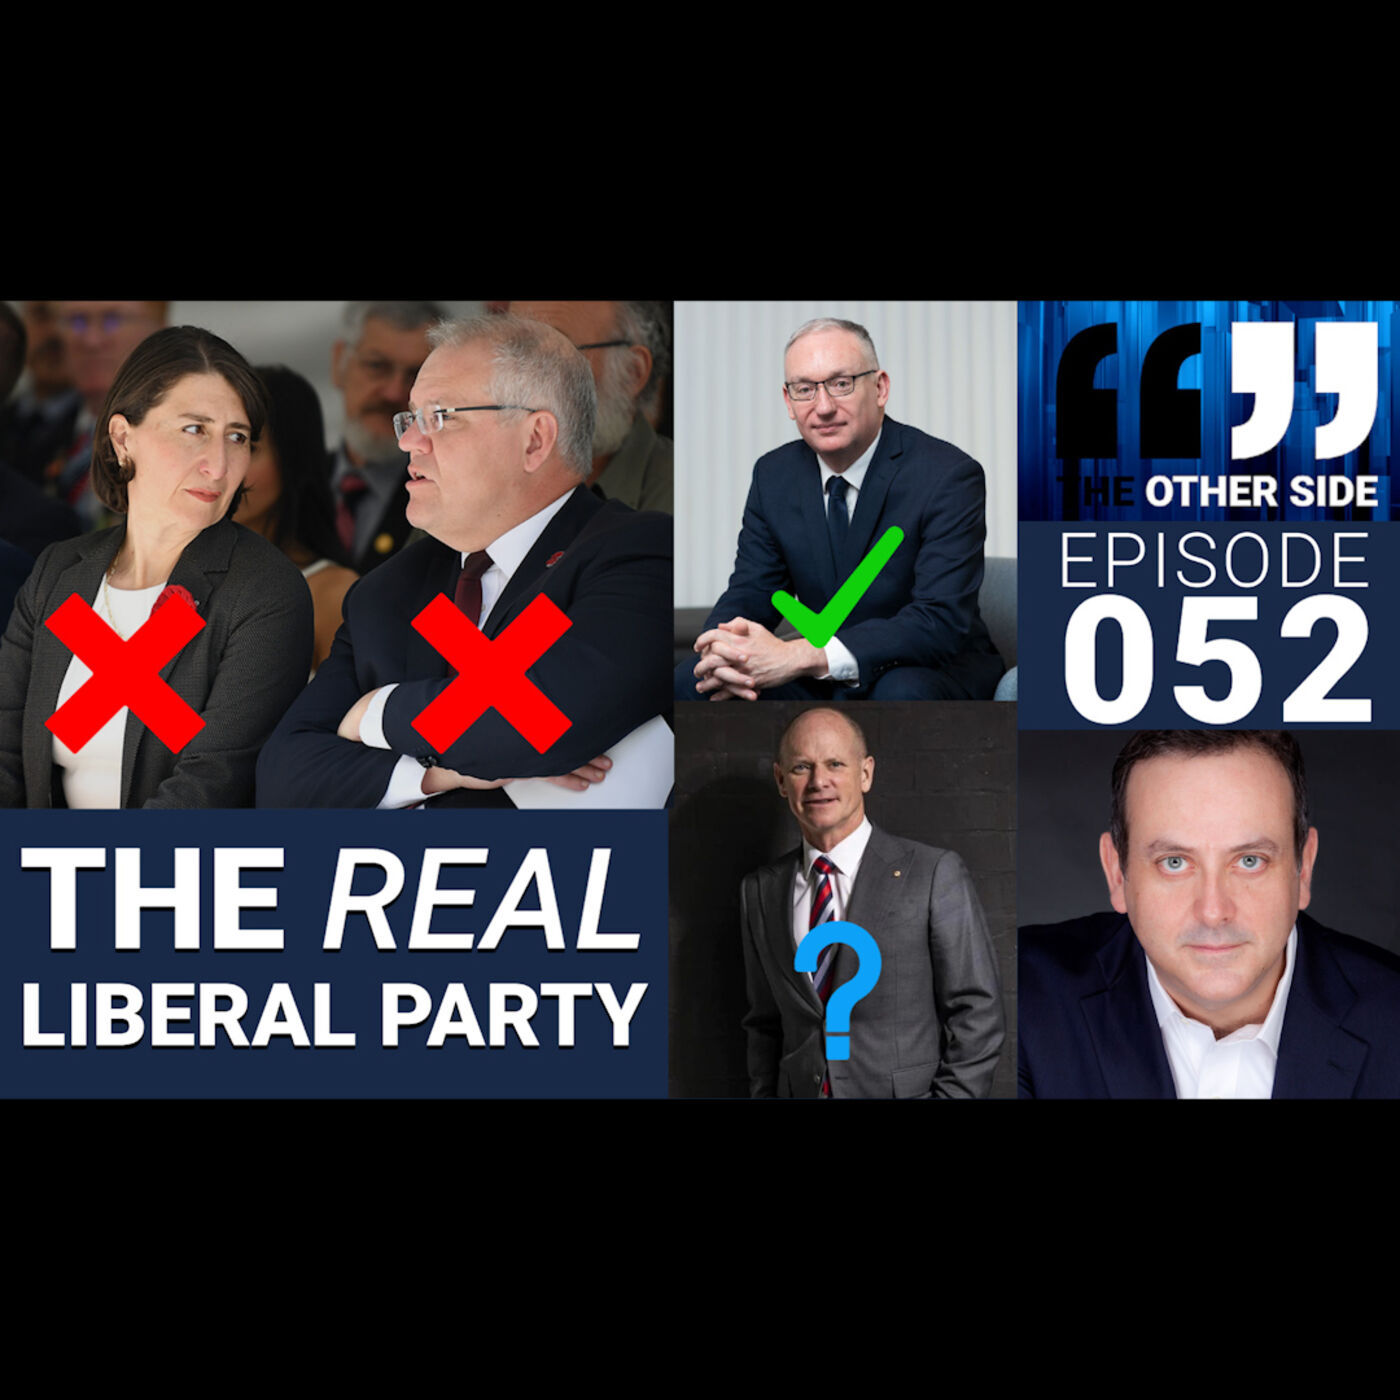 The Other Side Australia Episode 52: The REAL Liberal Party